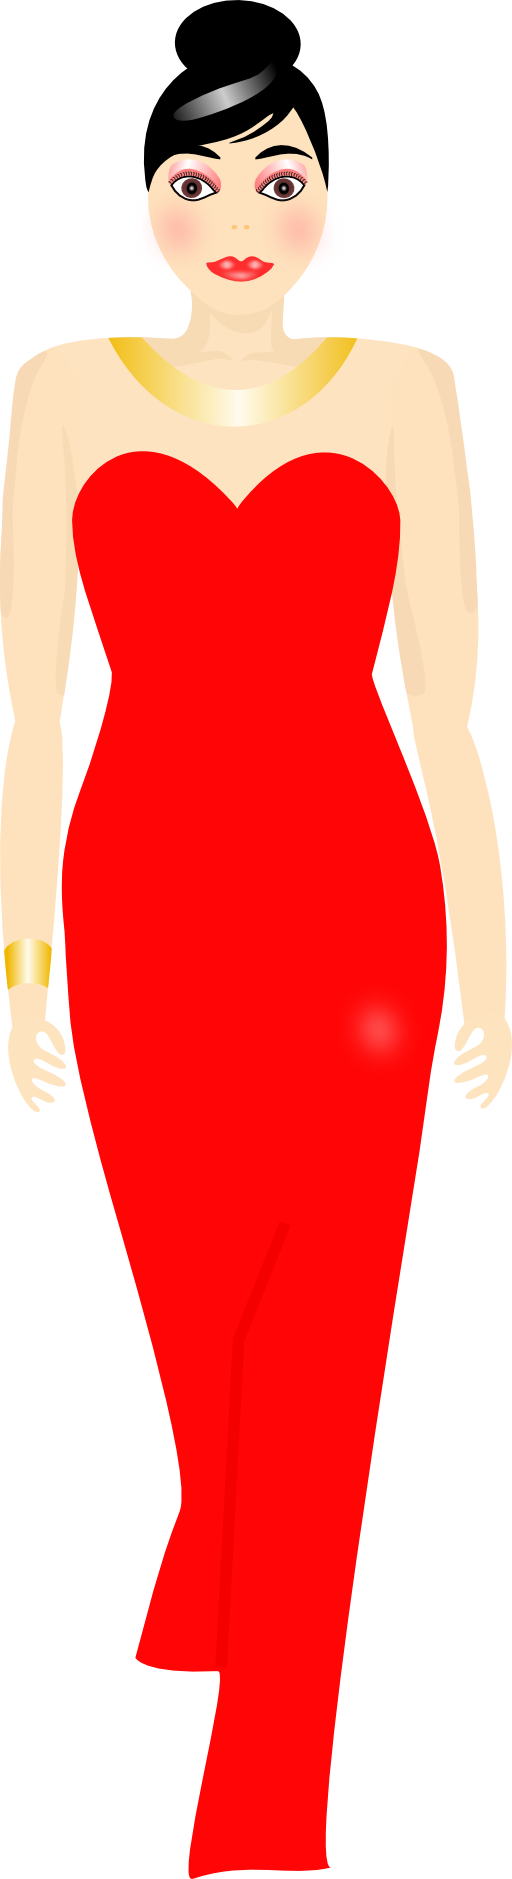 svg royalty free library Gown clipart red dress. Panda free images reddressclipart.